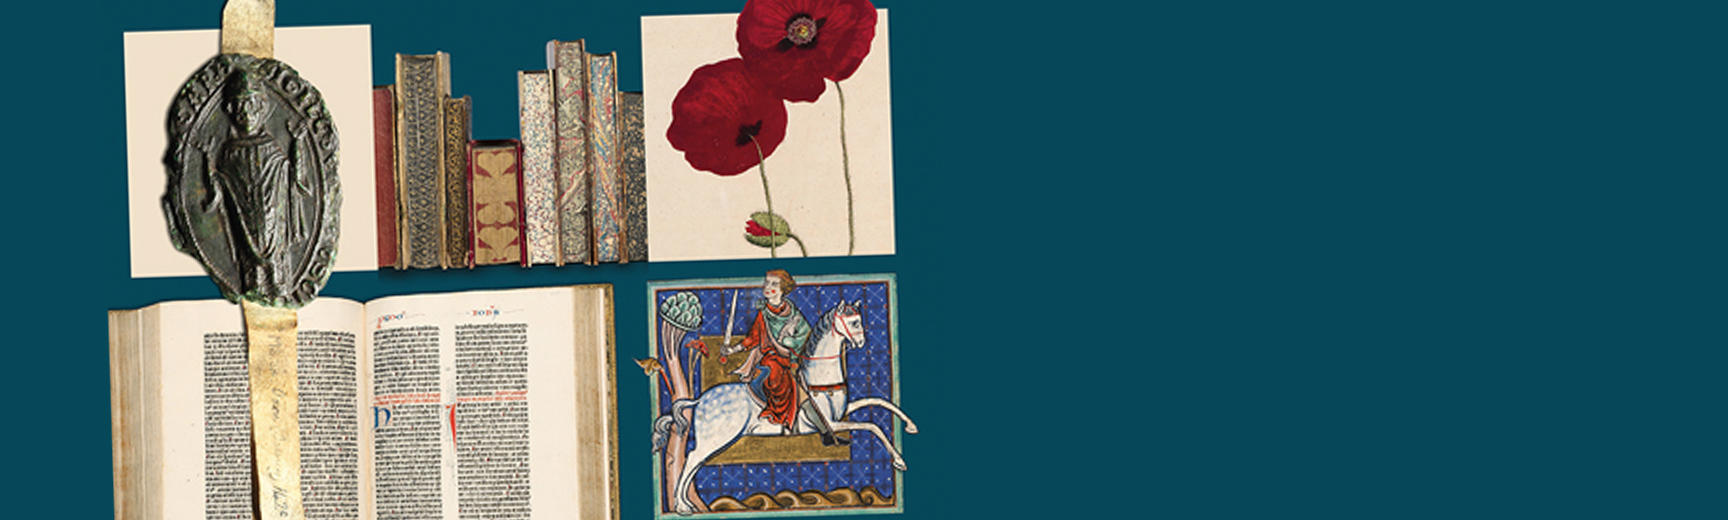 Composite image of Bodleian treasures: manuscript extracts, illustration of poppies, wax seal